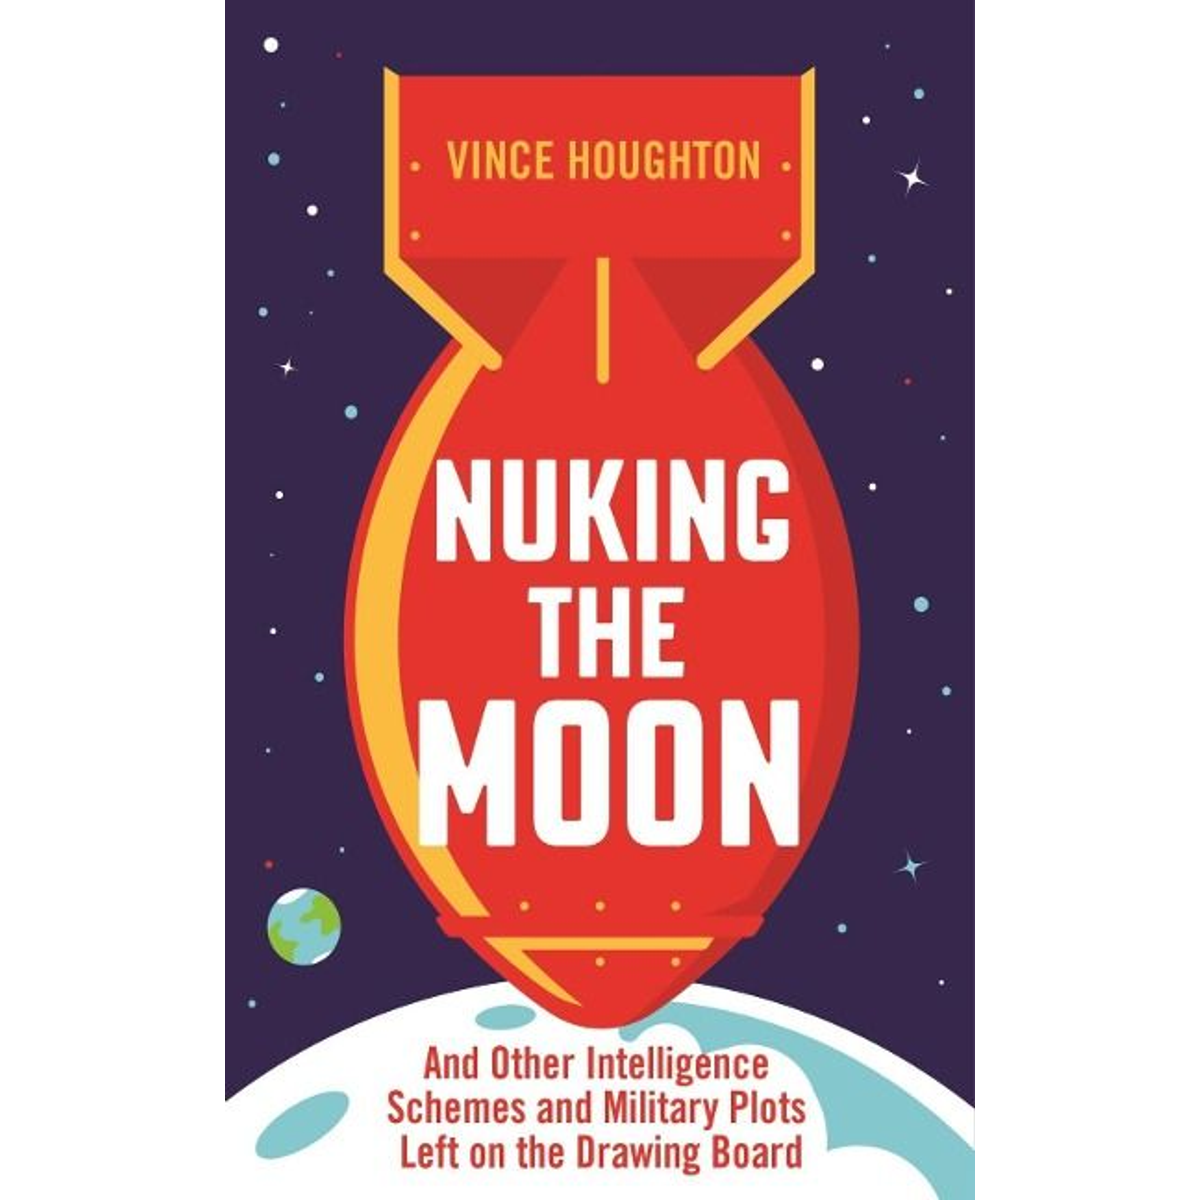 ISBN Nuking the Moon book Paperback 320 pages